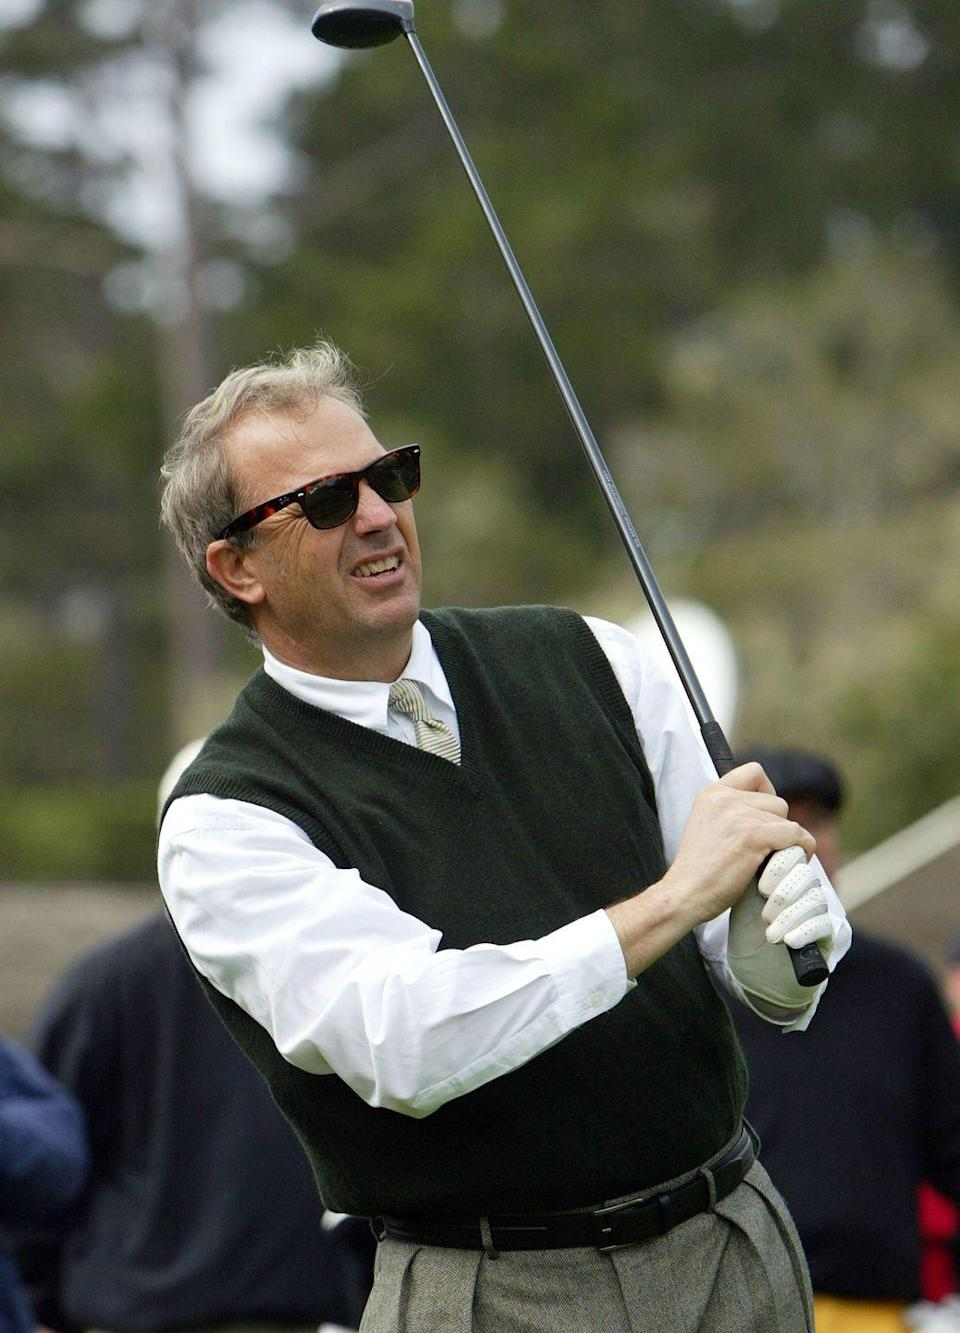 <p>Kevin Costner, a.k.a Tin Cup, at the AT&T Pro Shoot Out and Celebrity Golf in 2004.</p>